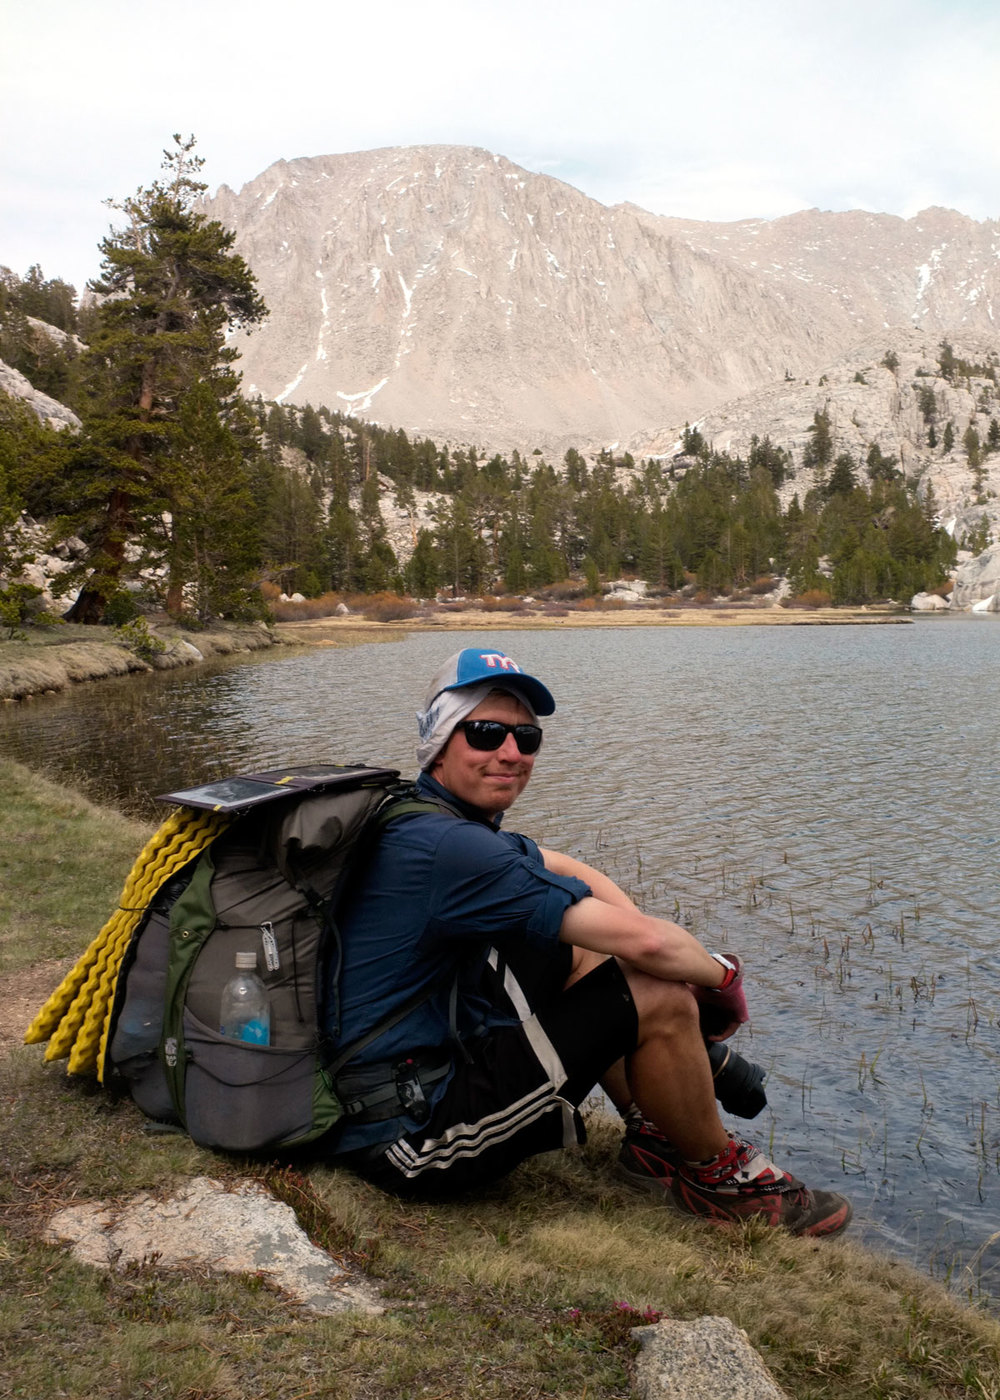 Taking a picture and a break lake-side. We were on our Mt. Whitney evening approach.